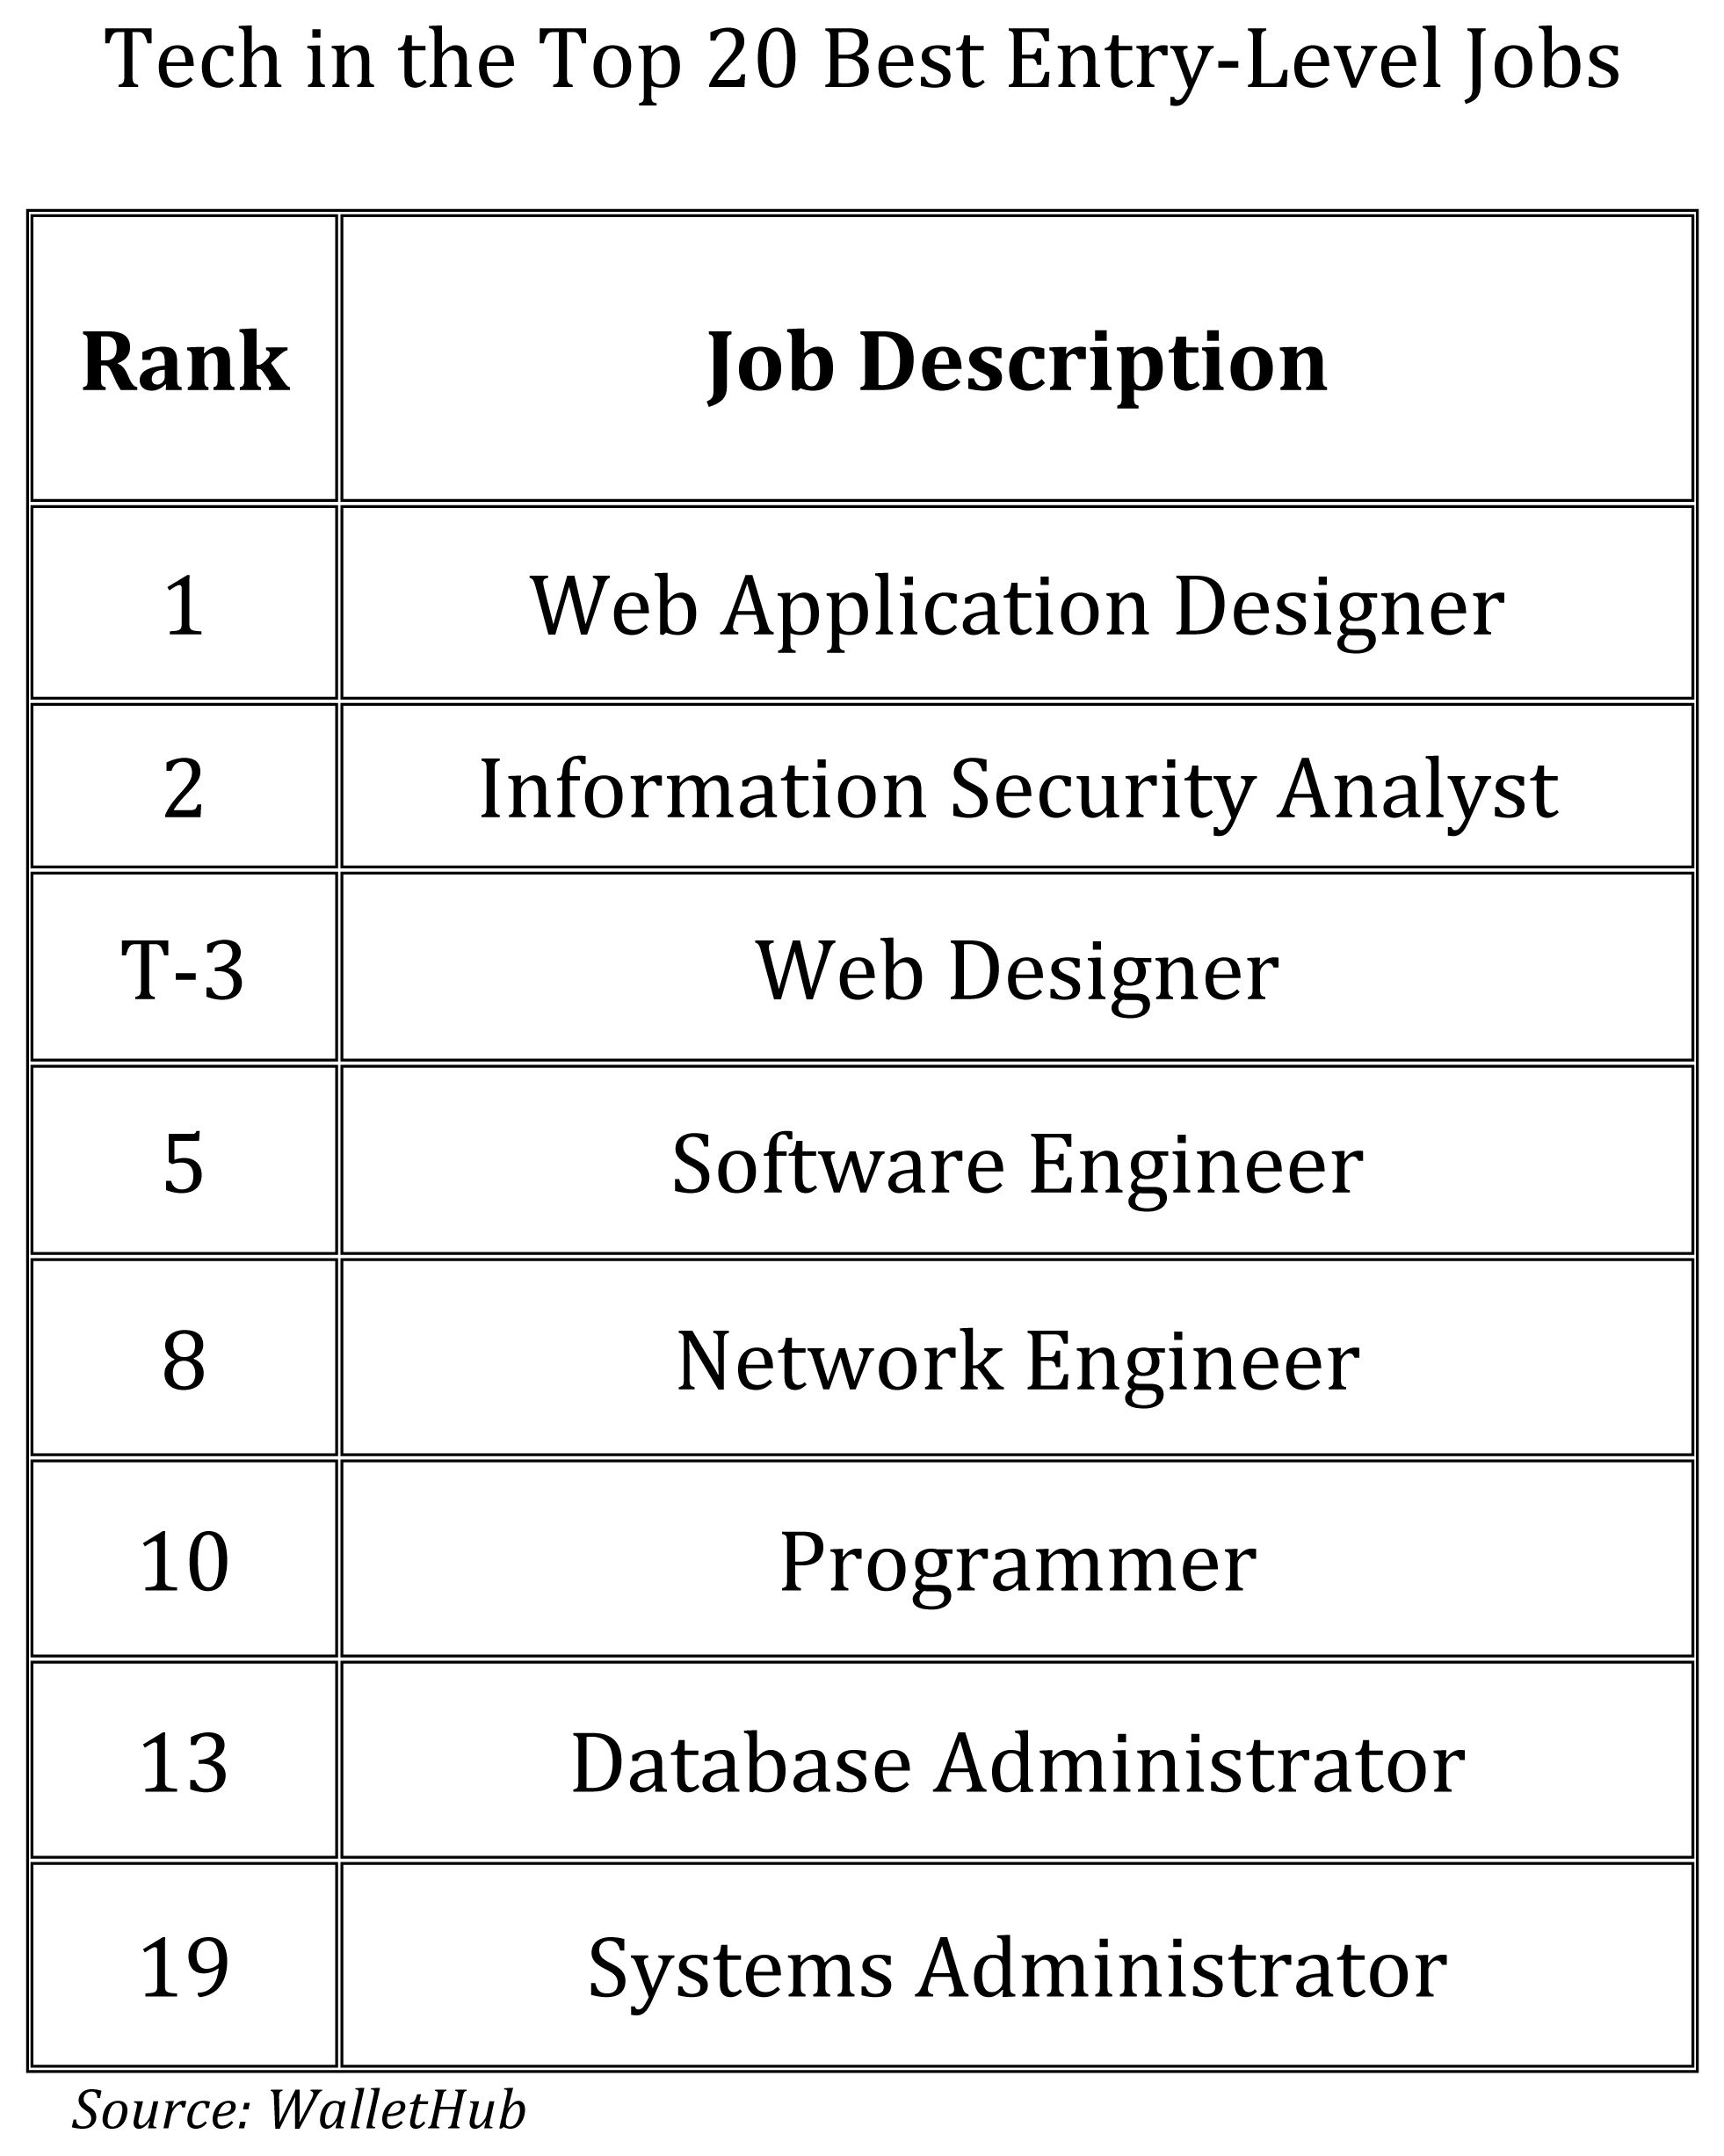 Tech Is The Place To Be For The Top Entry Level Jobs With Images